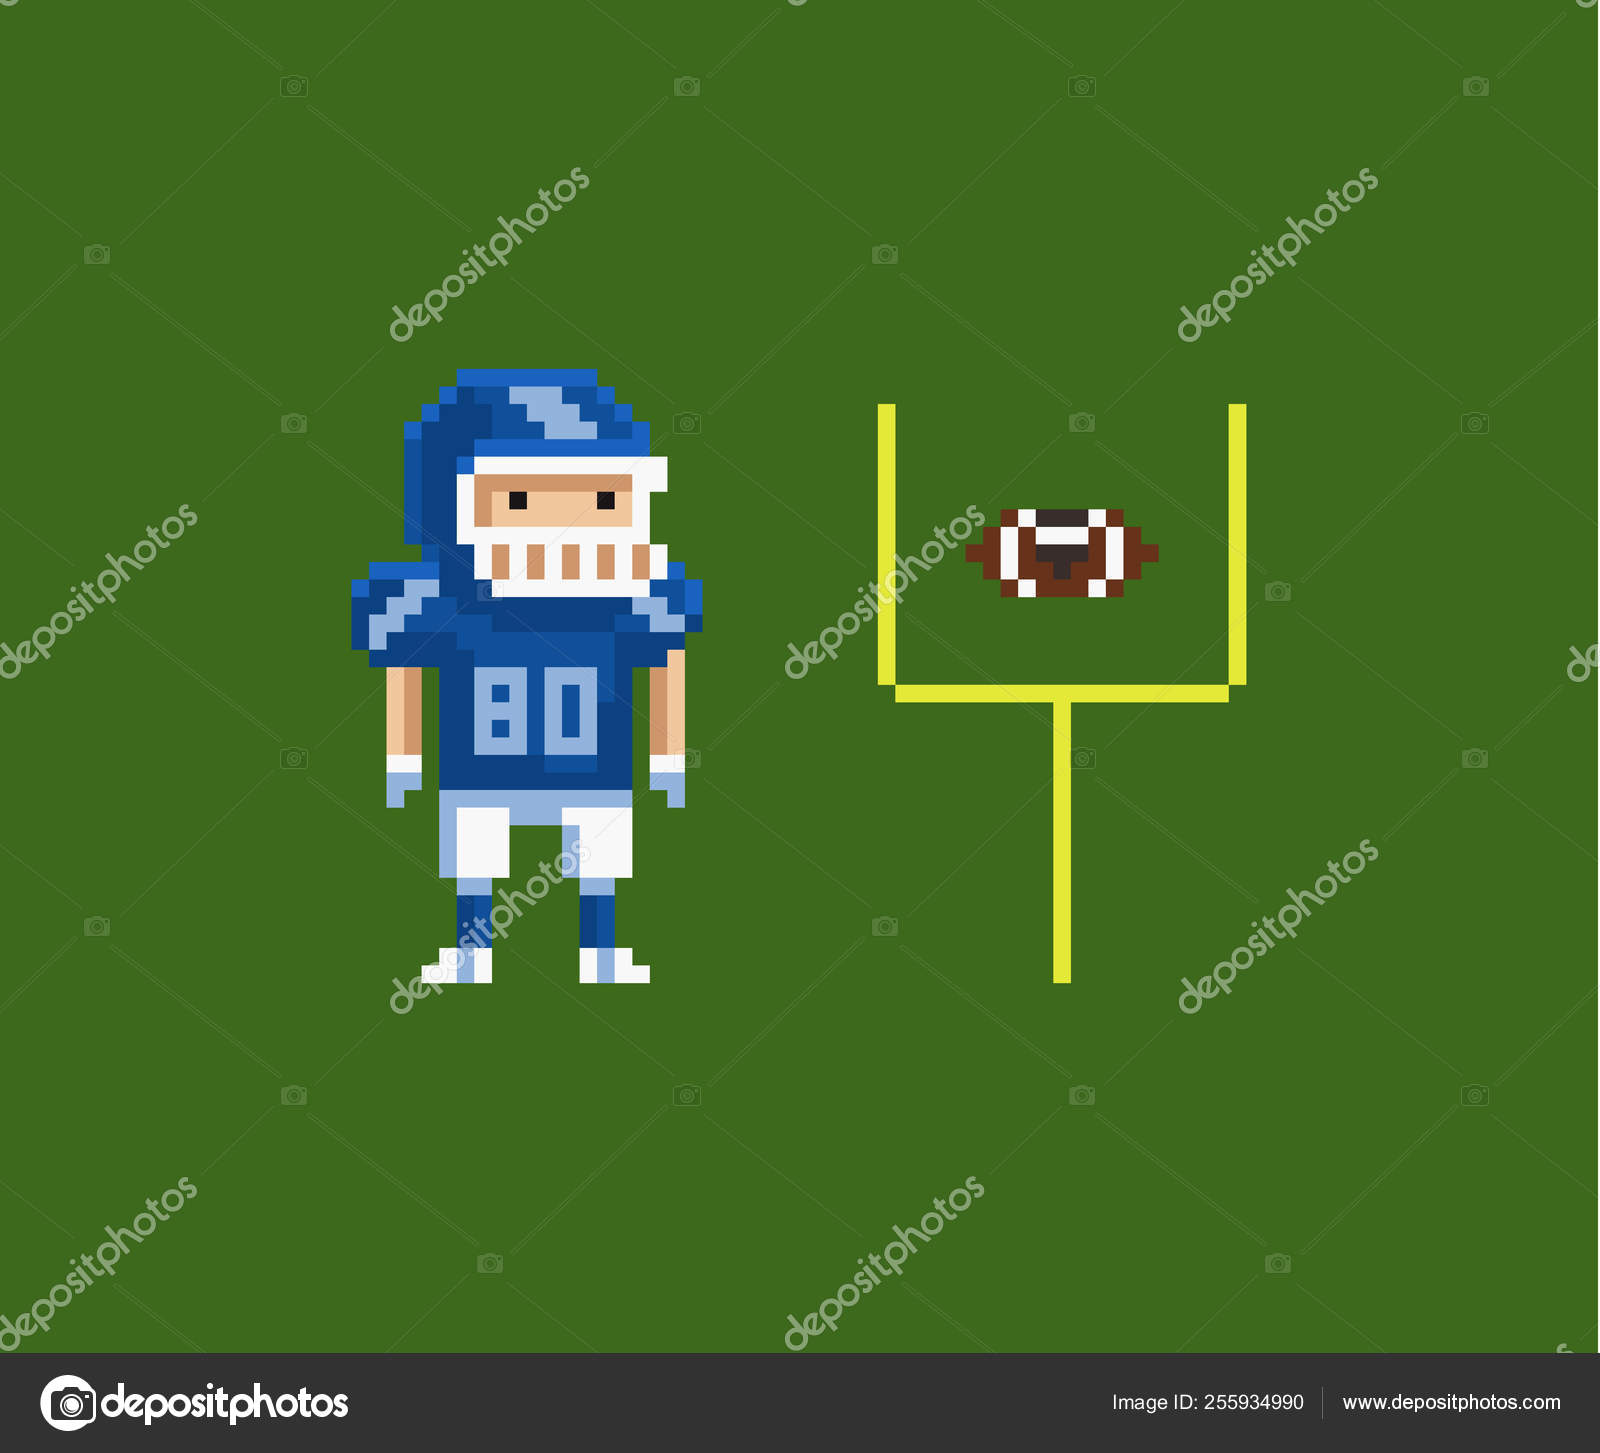 American Football Pixel Art Vector Pixel Art Illustration